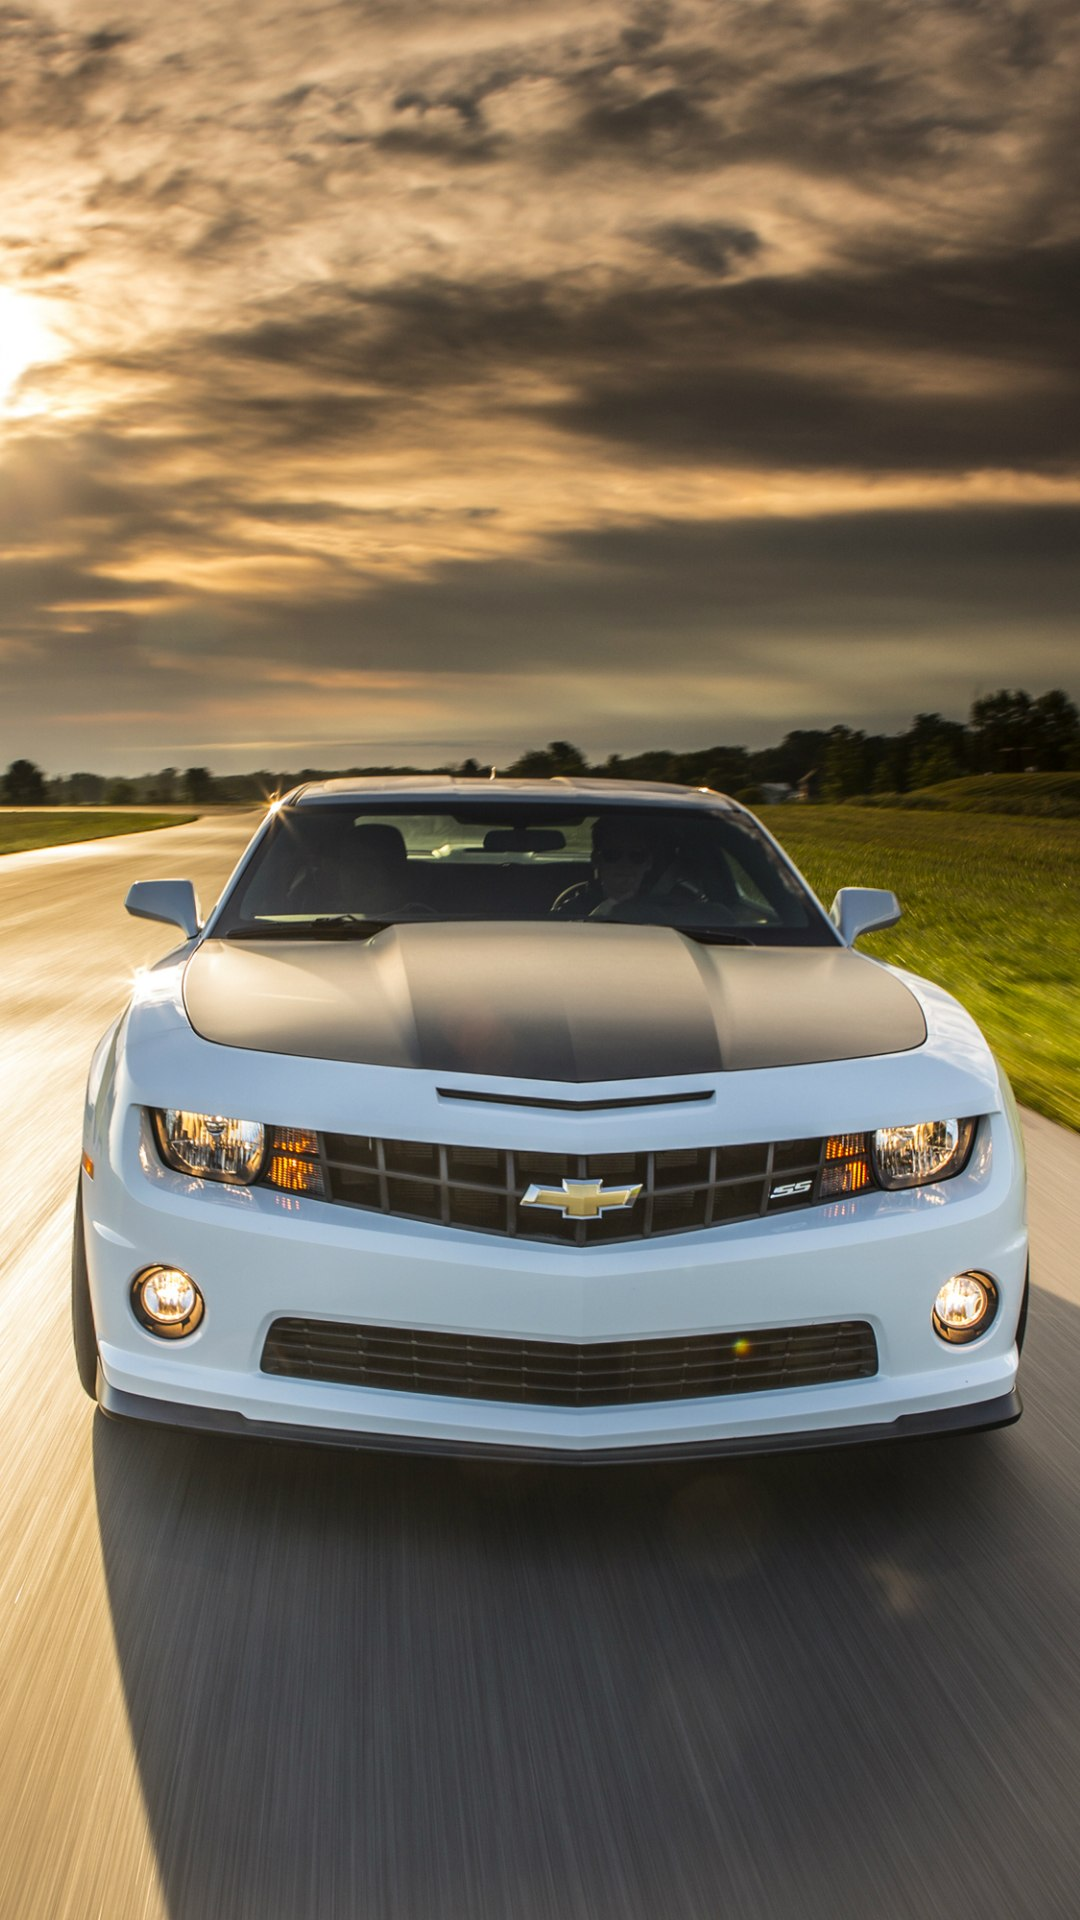 Chevy Camaro Chevrolet Camaro Wallpaper Phone 790188 Hd Wallpaper Backgrounds Download